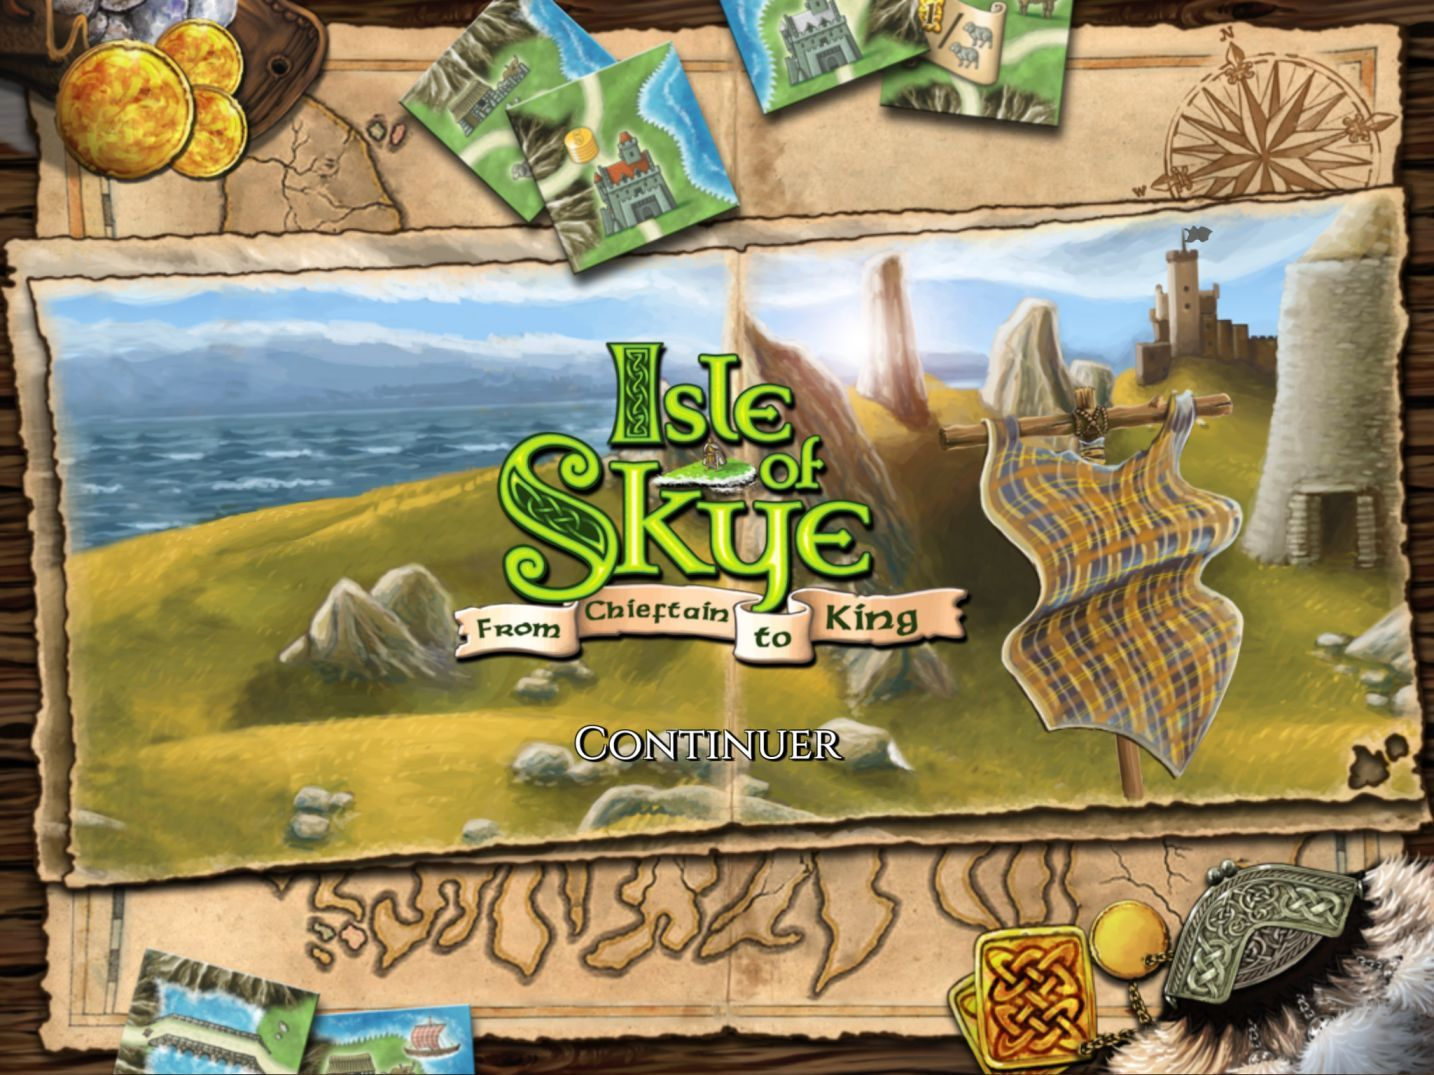 Isle of Skye (copie d'écran 1 sur iPhone / iPad)